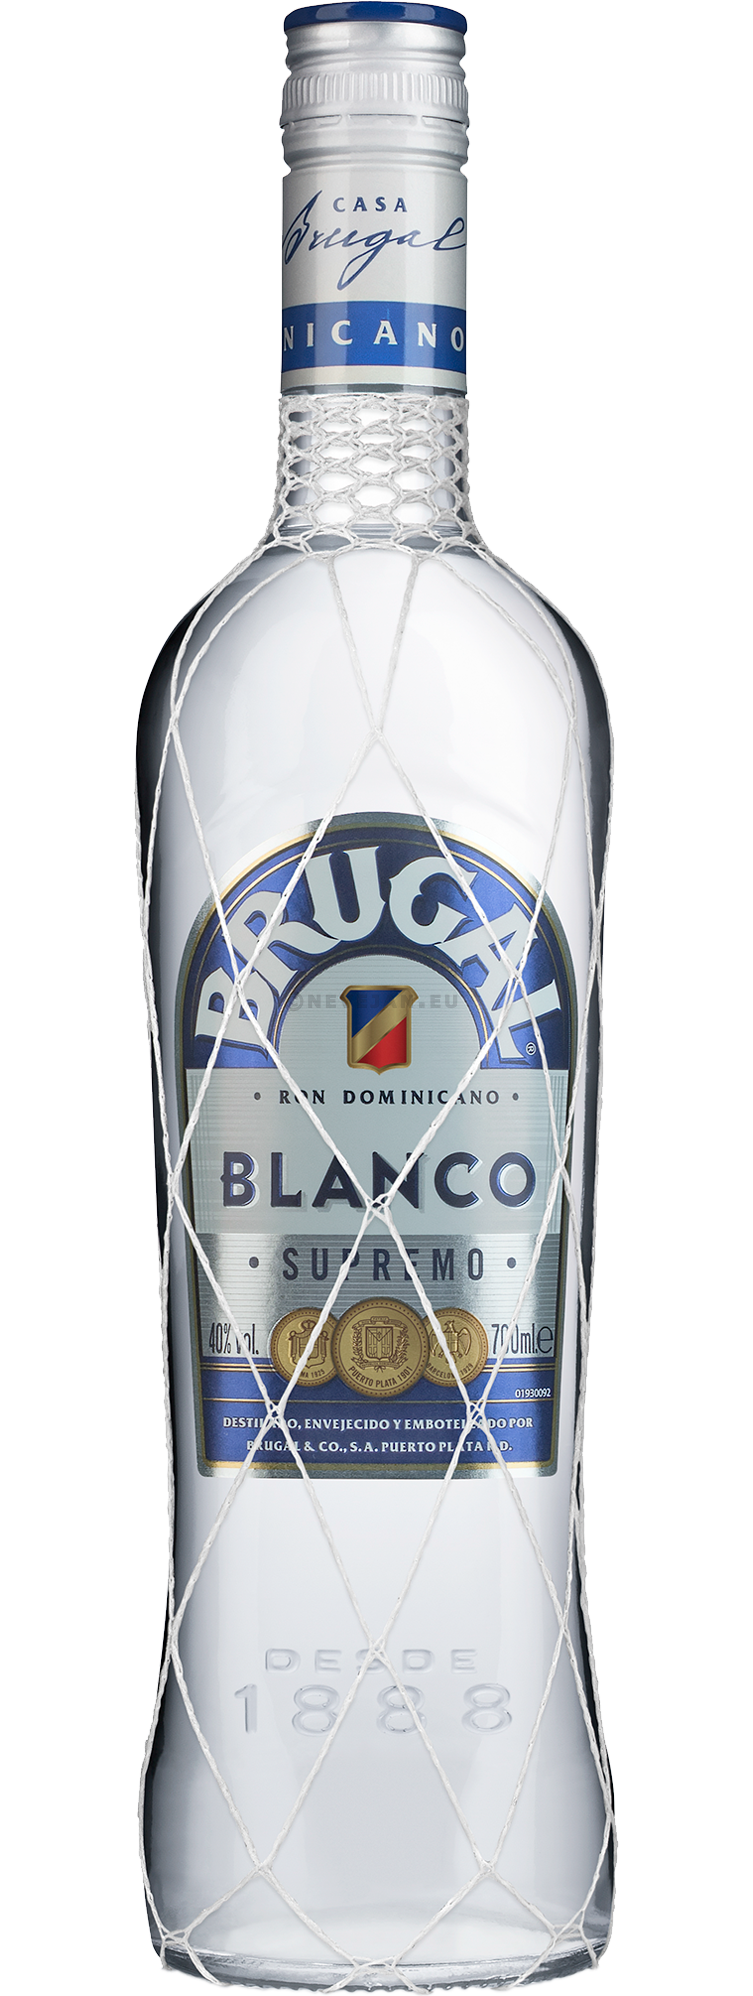 Rum Brugal Blanco Supremo 70cl 40% Dominican Republic